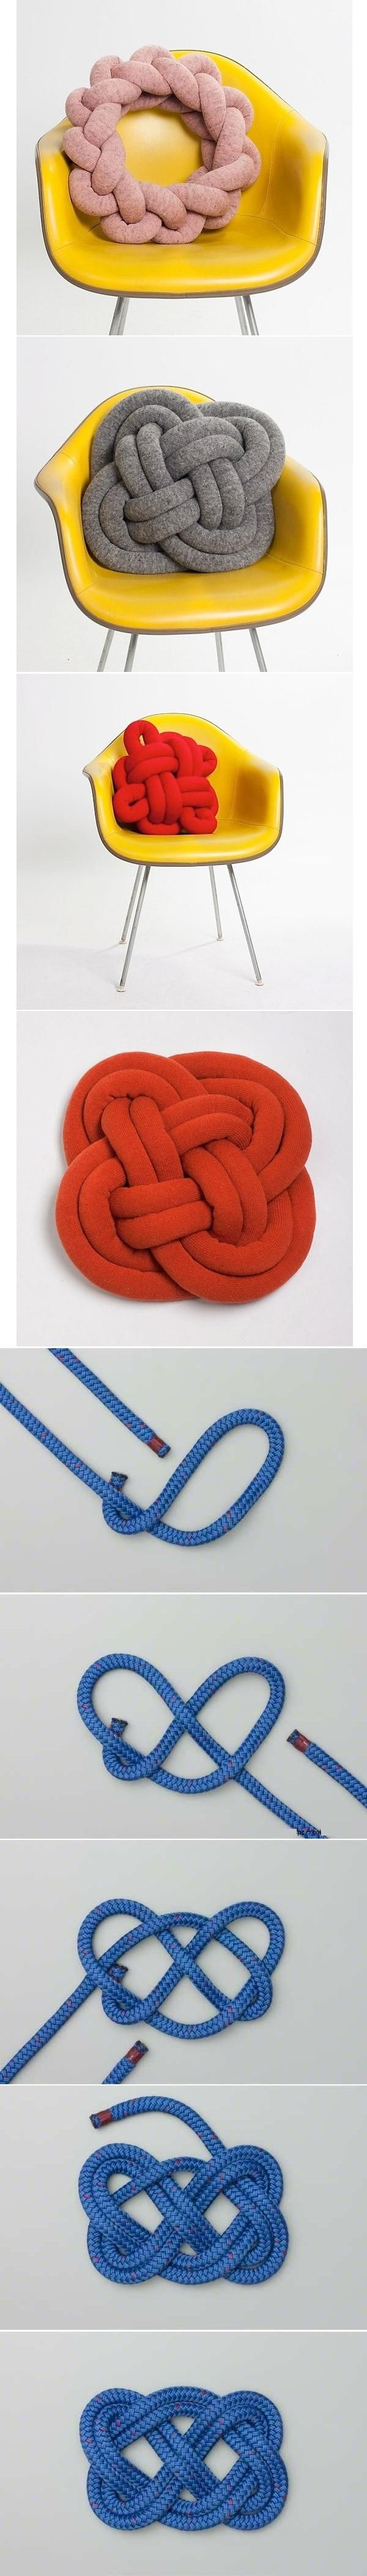 DIY Knot Pillow